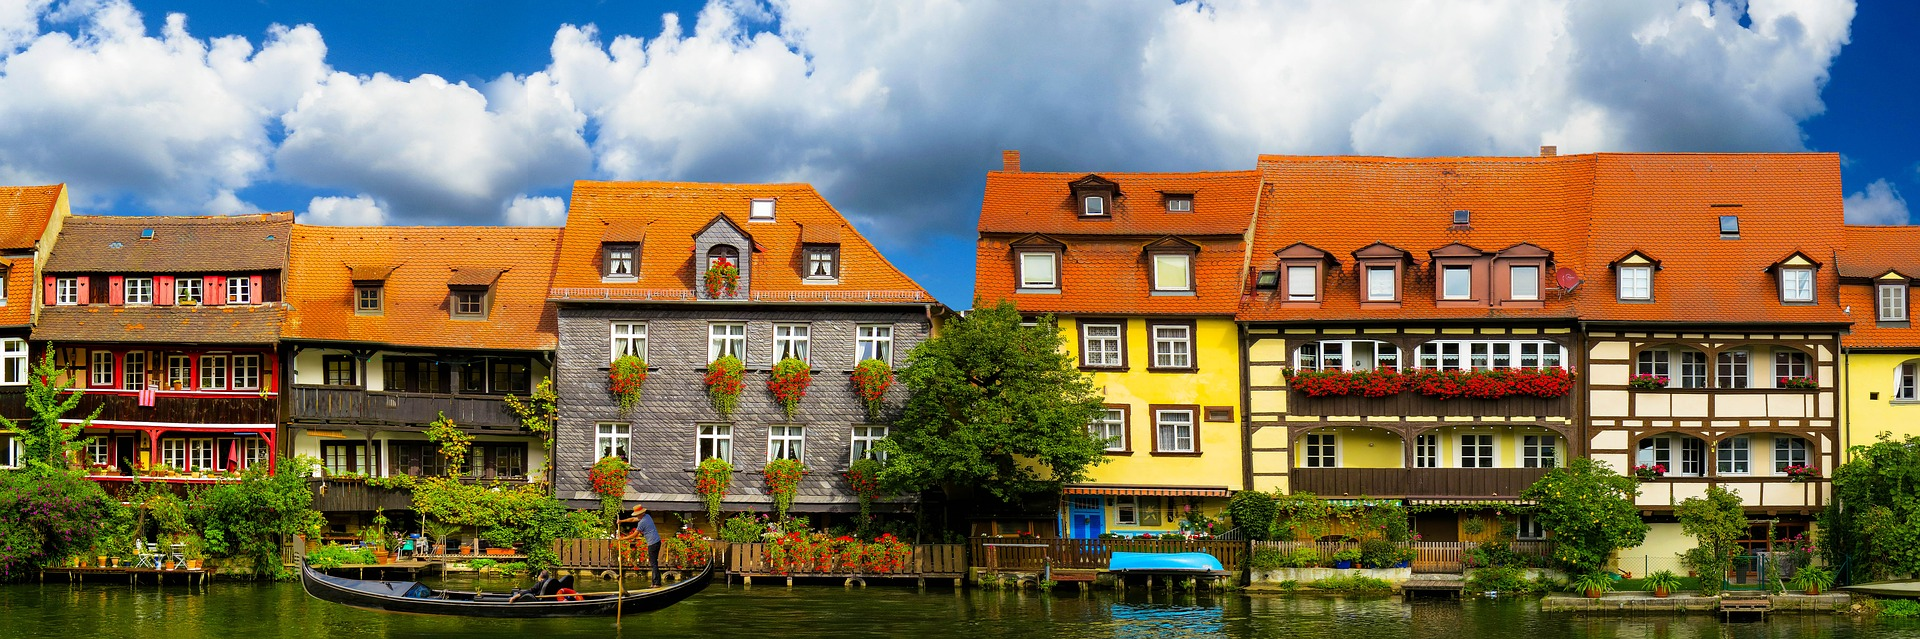 Bamberg, tour in Germany, activities with locals, private trip, transfer with stops